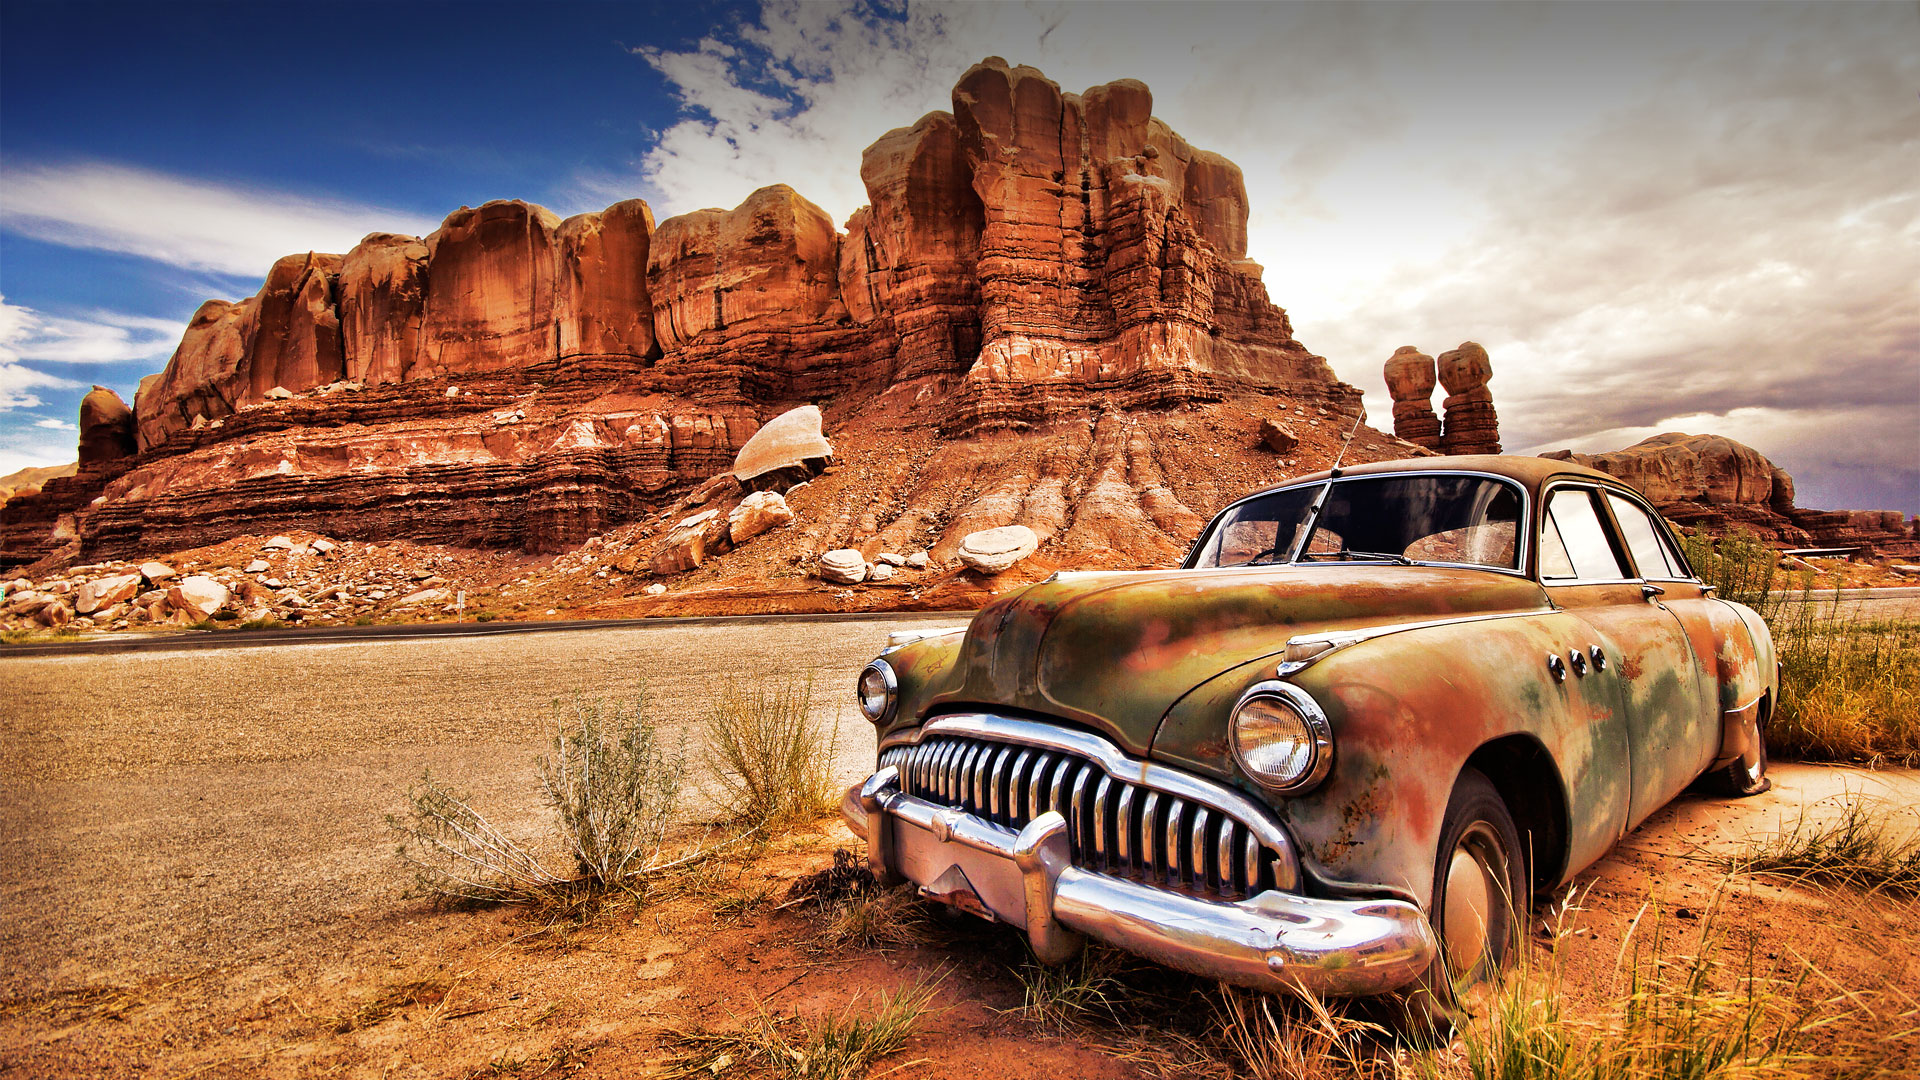 Cool Old Cars Wallpapers Hdr Photo Wallpaper 1920x1080 68576